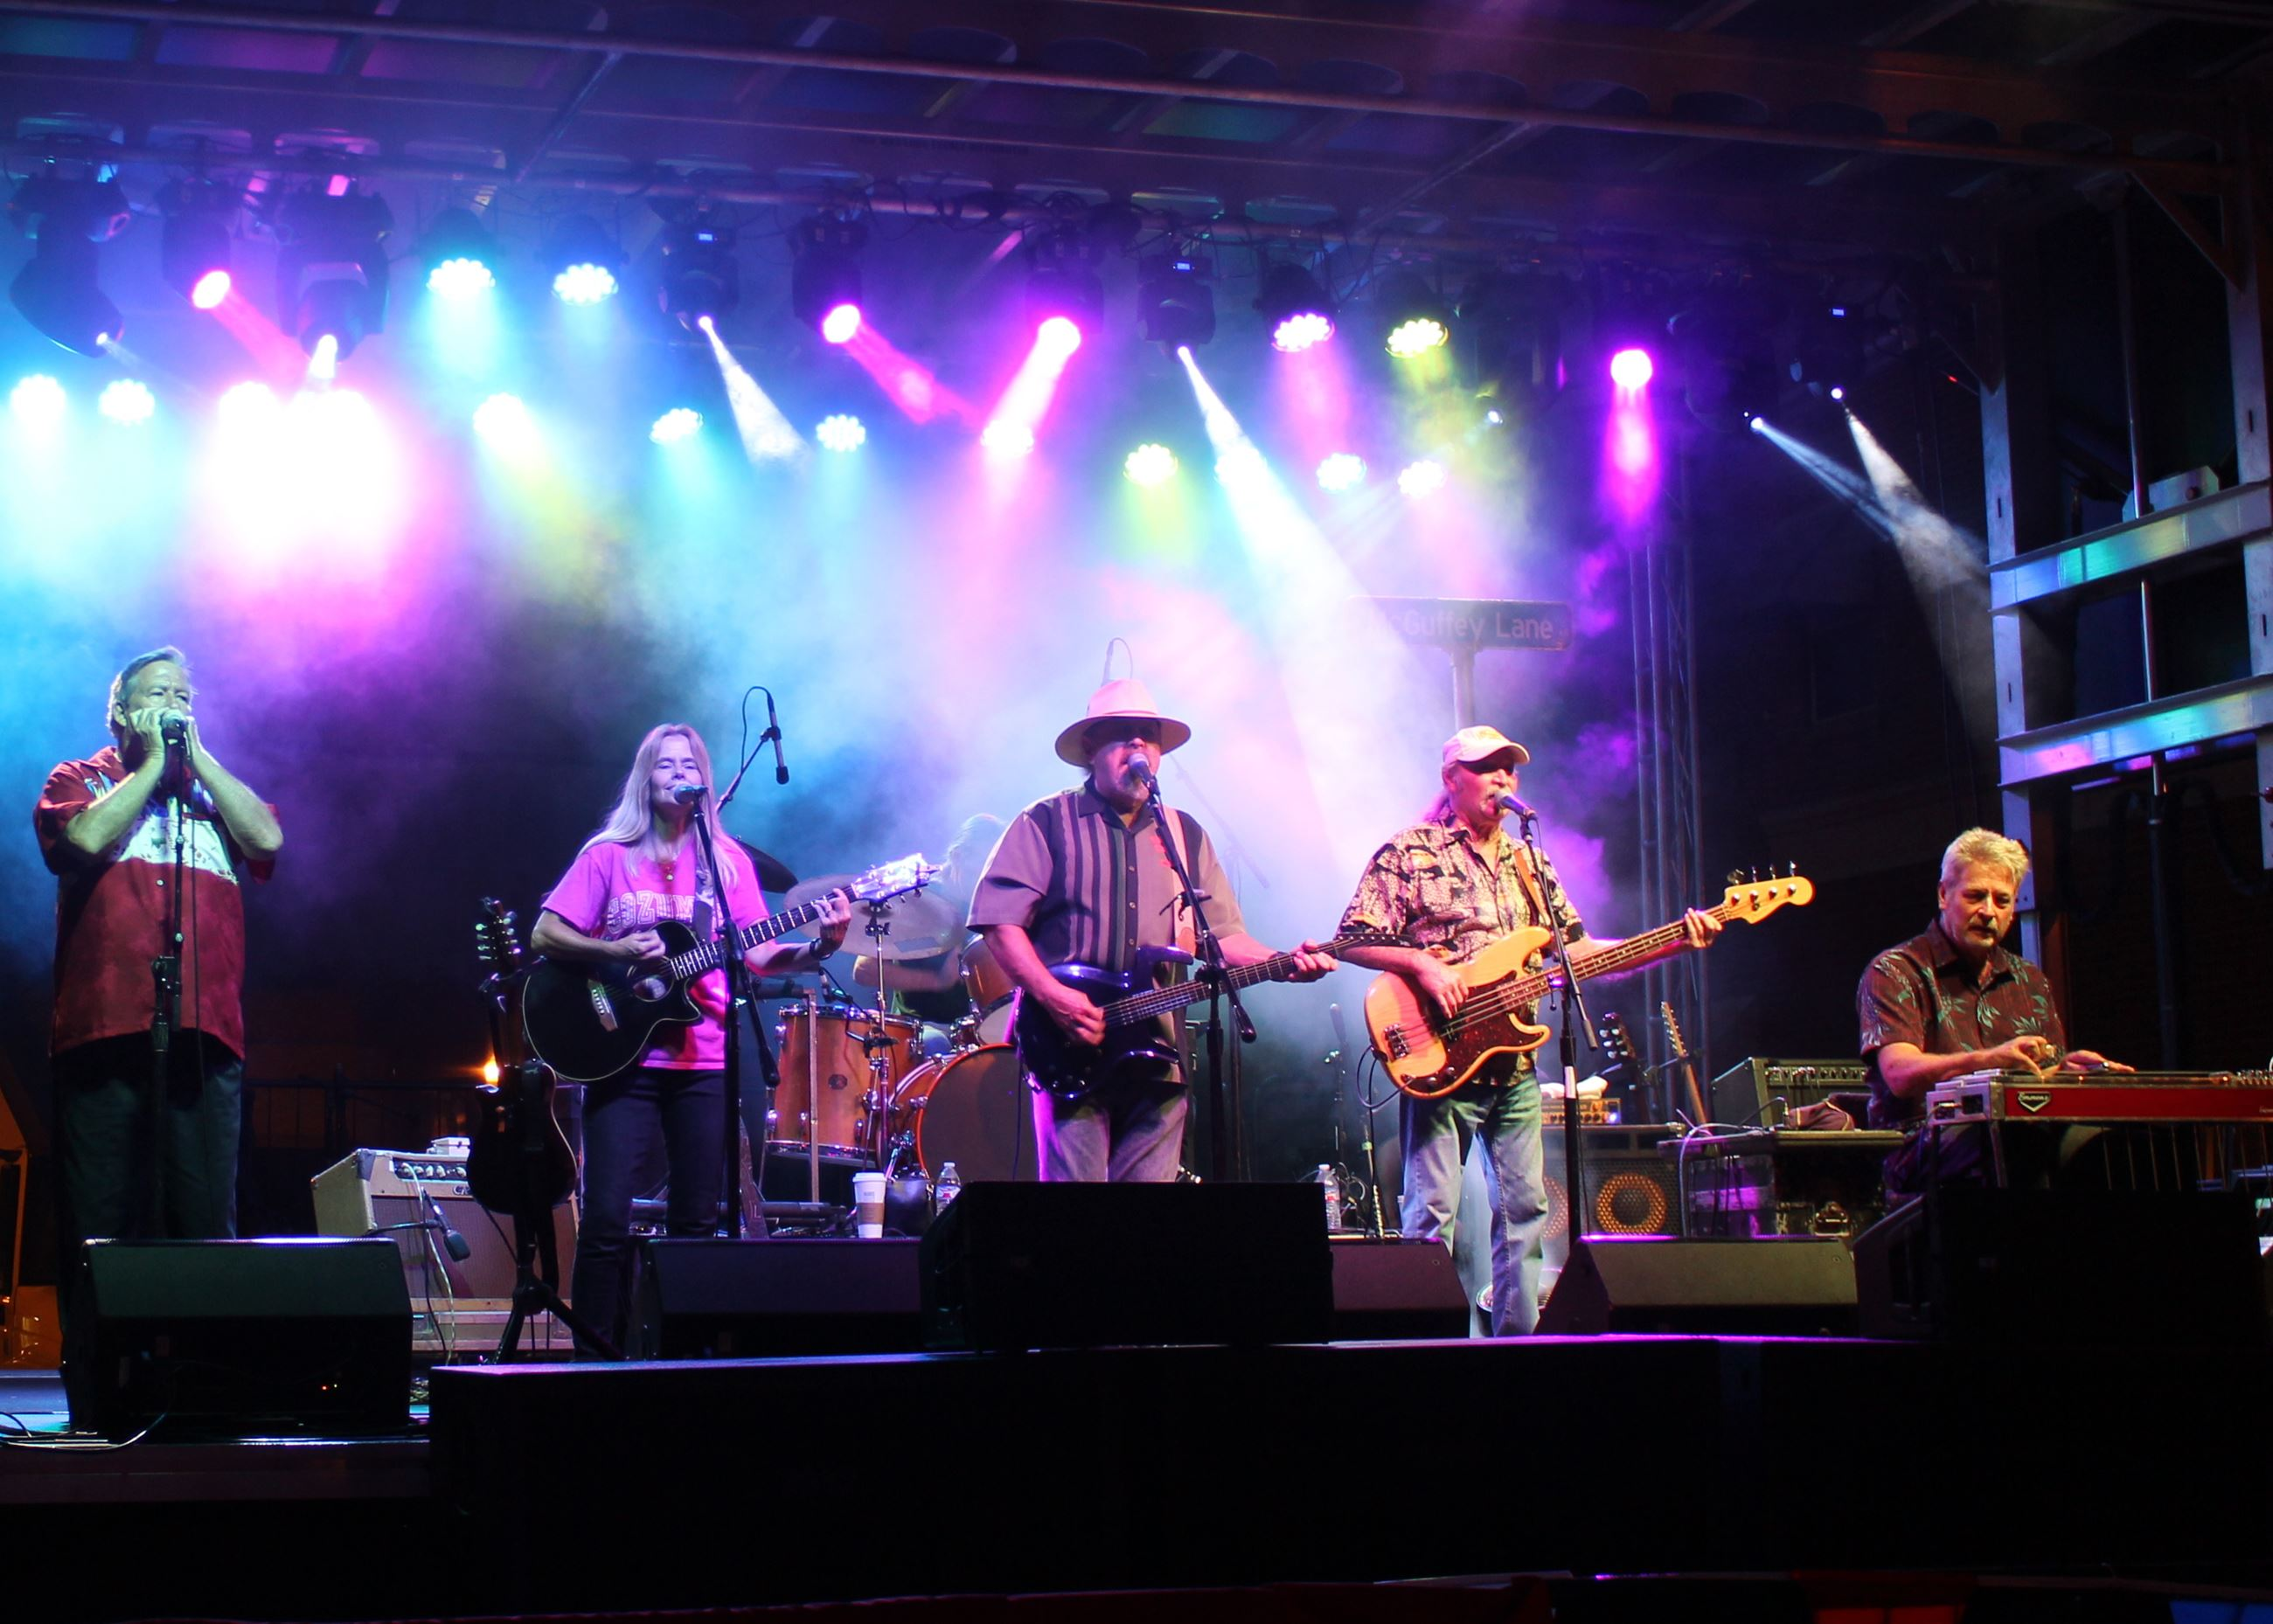 McGuffey Lane Band on the stage